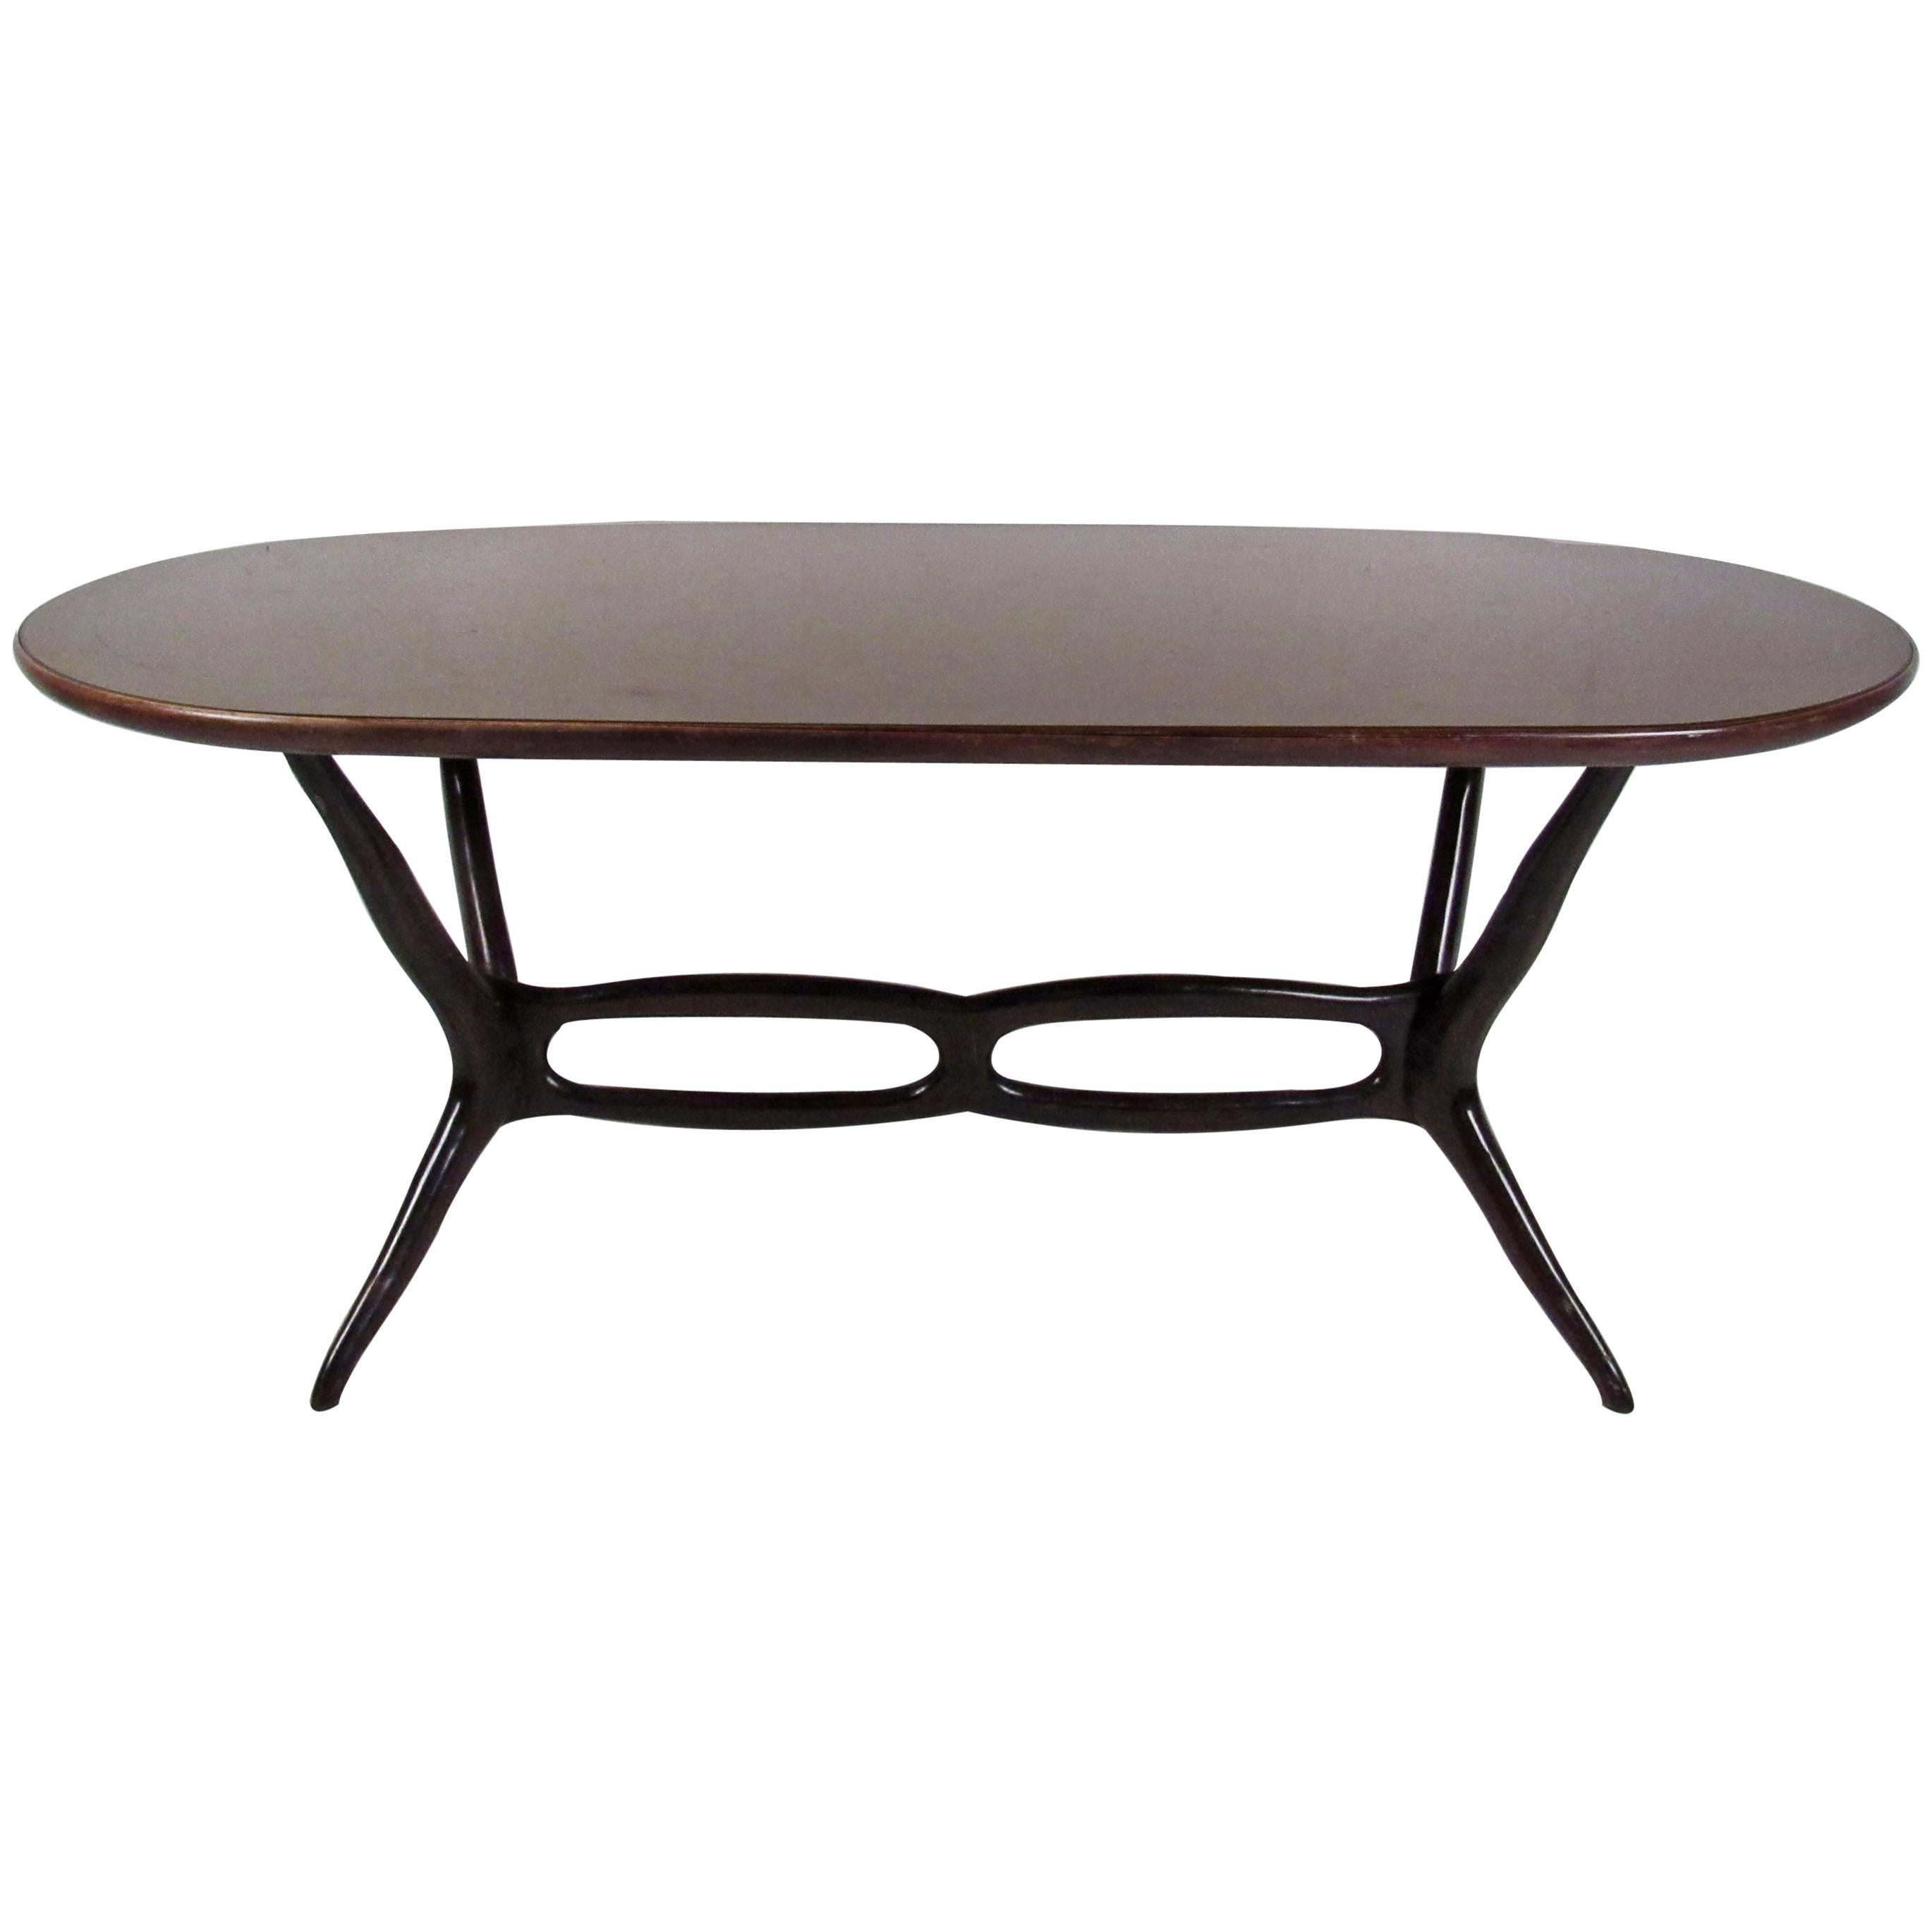 Italian Modern Rosewood Dining Table